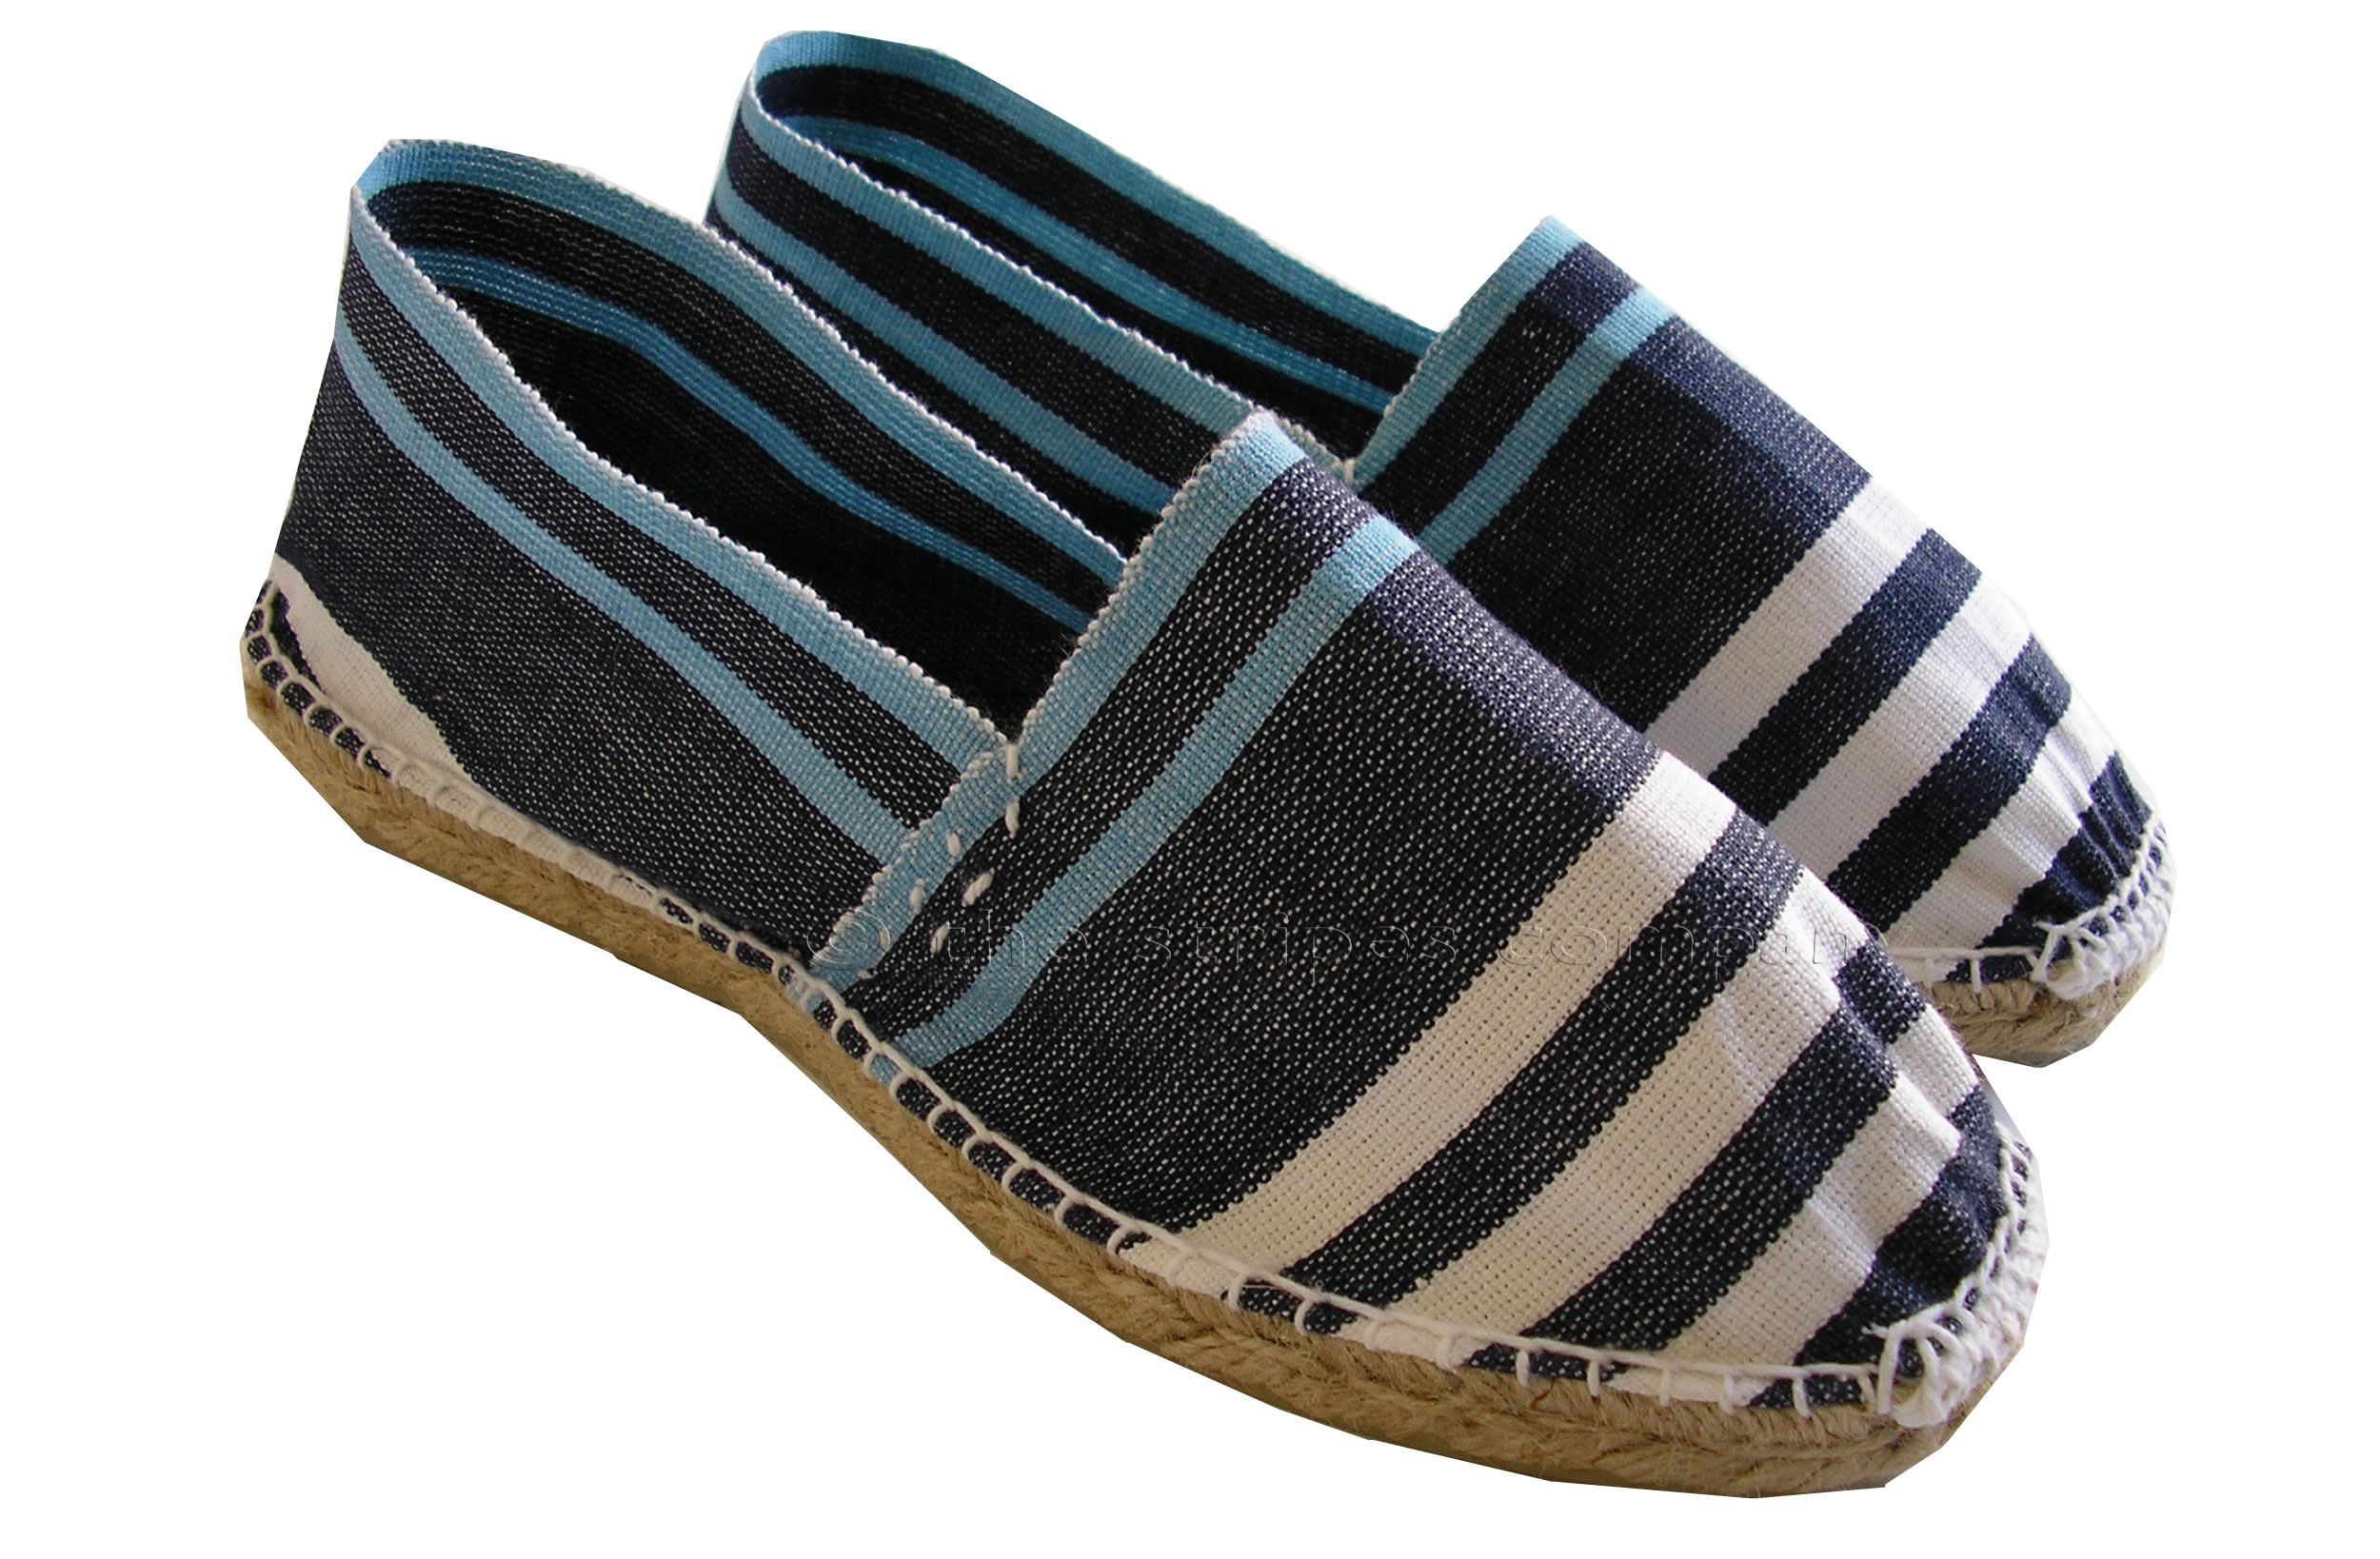 Striped Espadrilles | Navy blue, pale blue, white stripe espadrille shoes